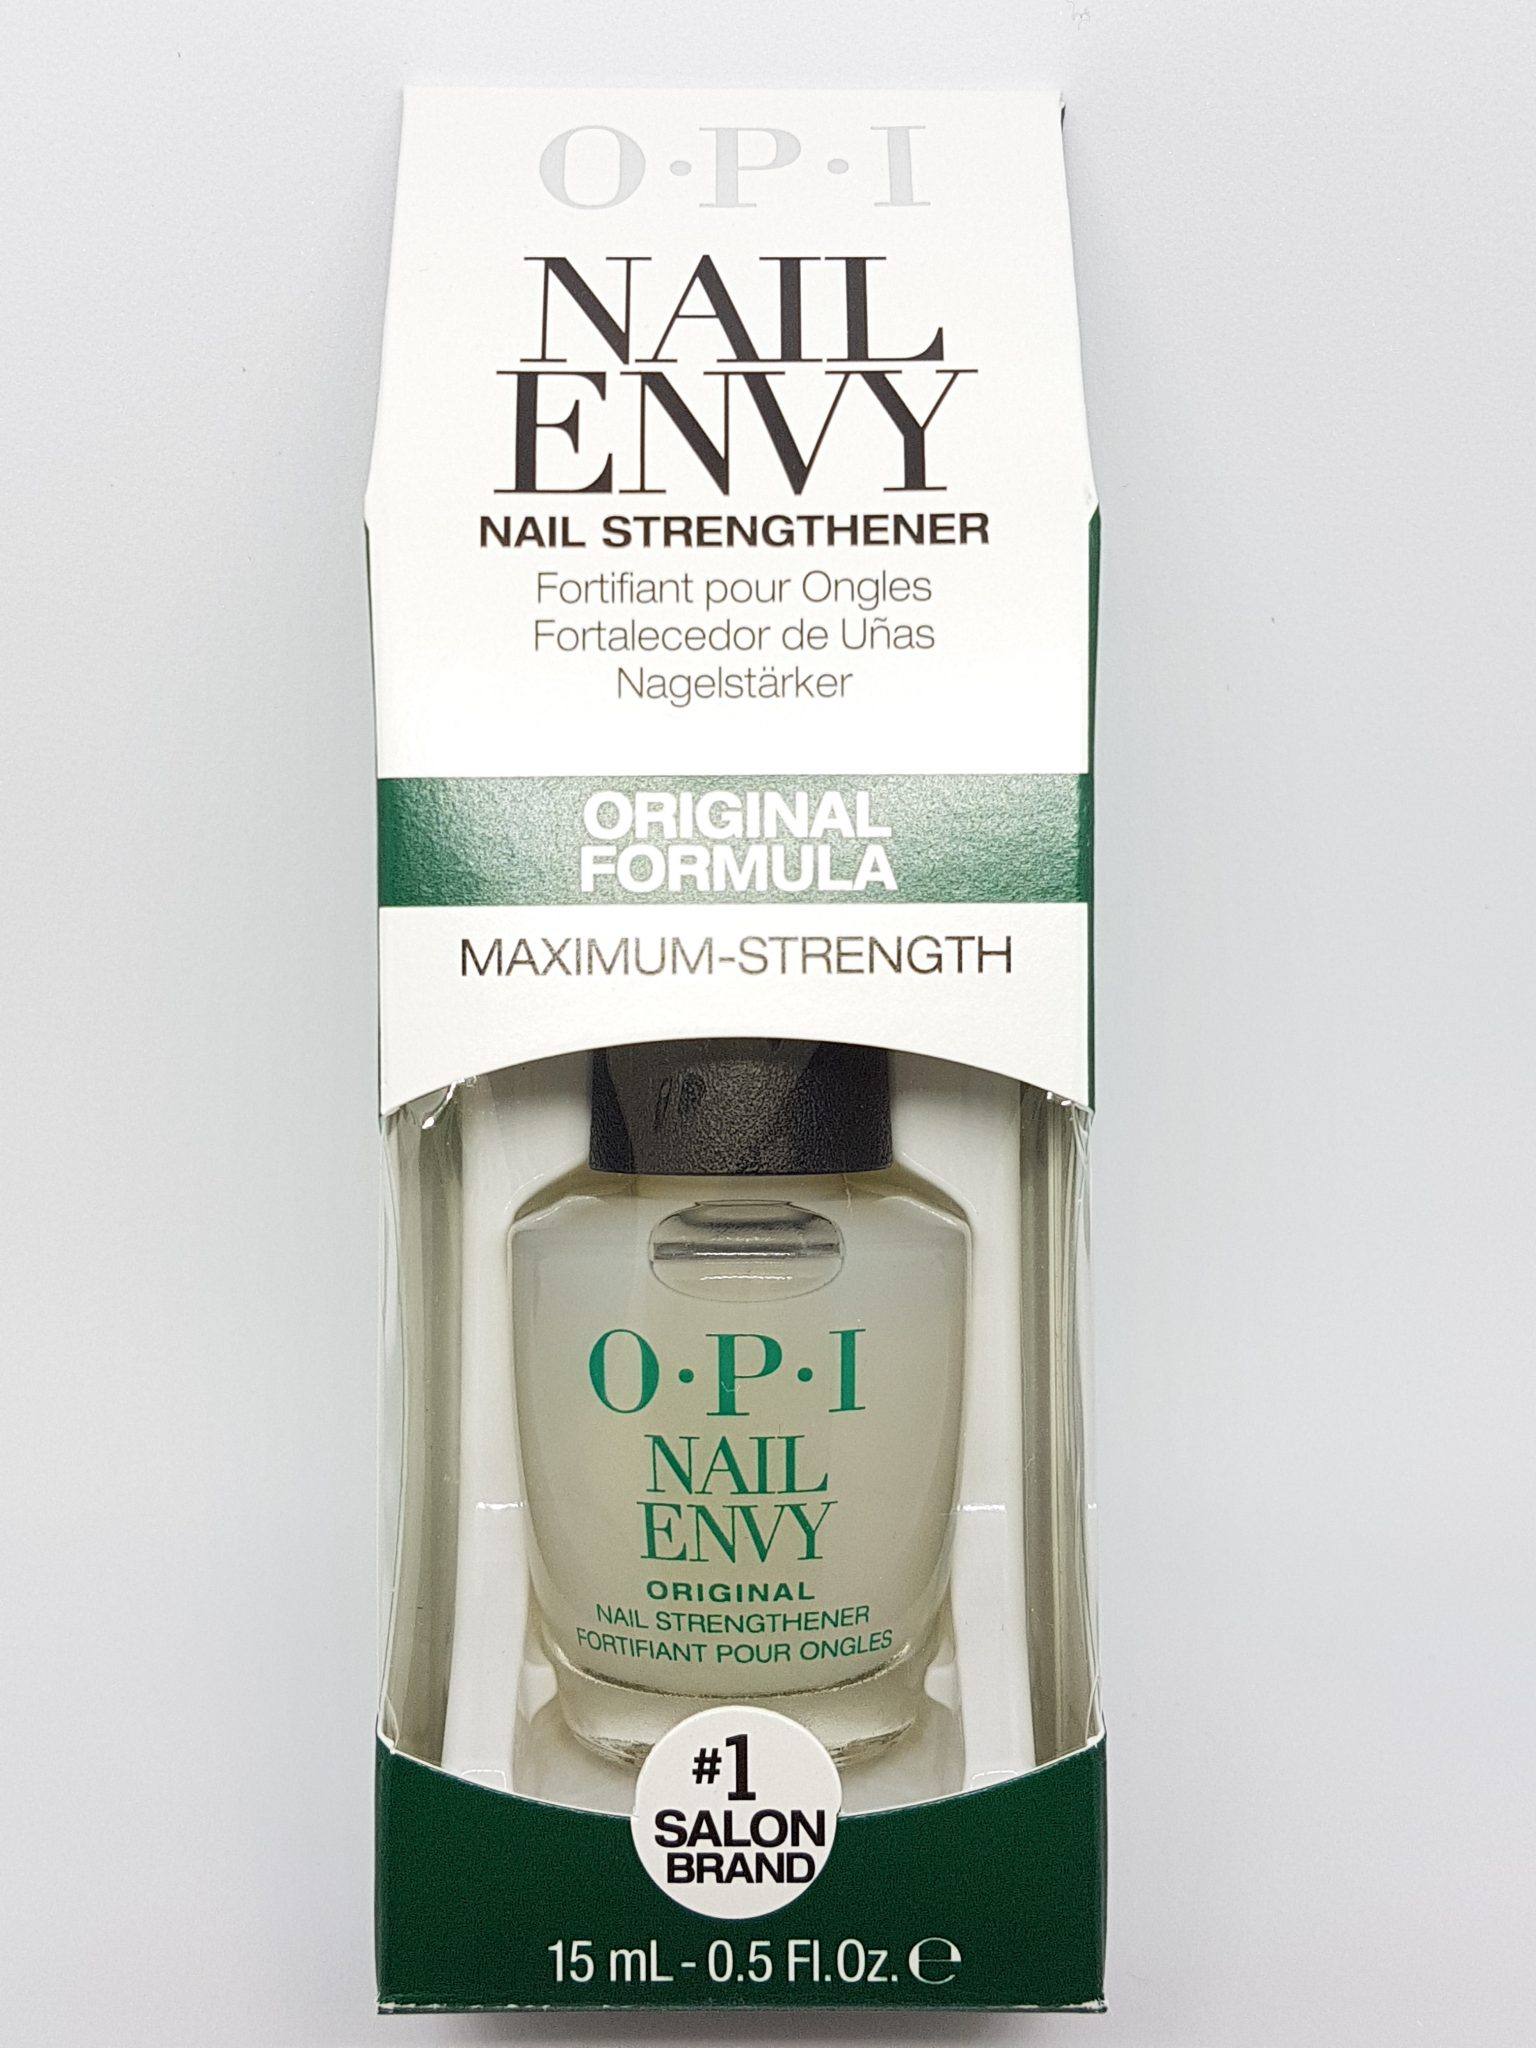 OPI Nail Envy Original Formula 15ml - BC GELS - Buy The World Best ...